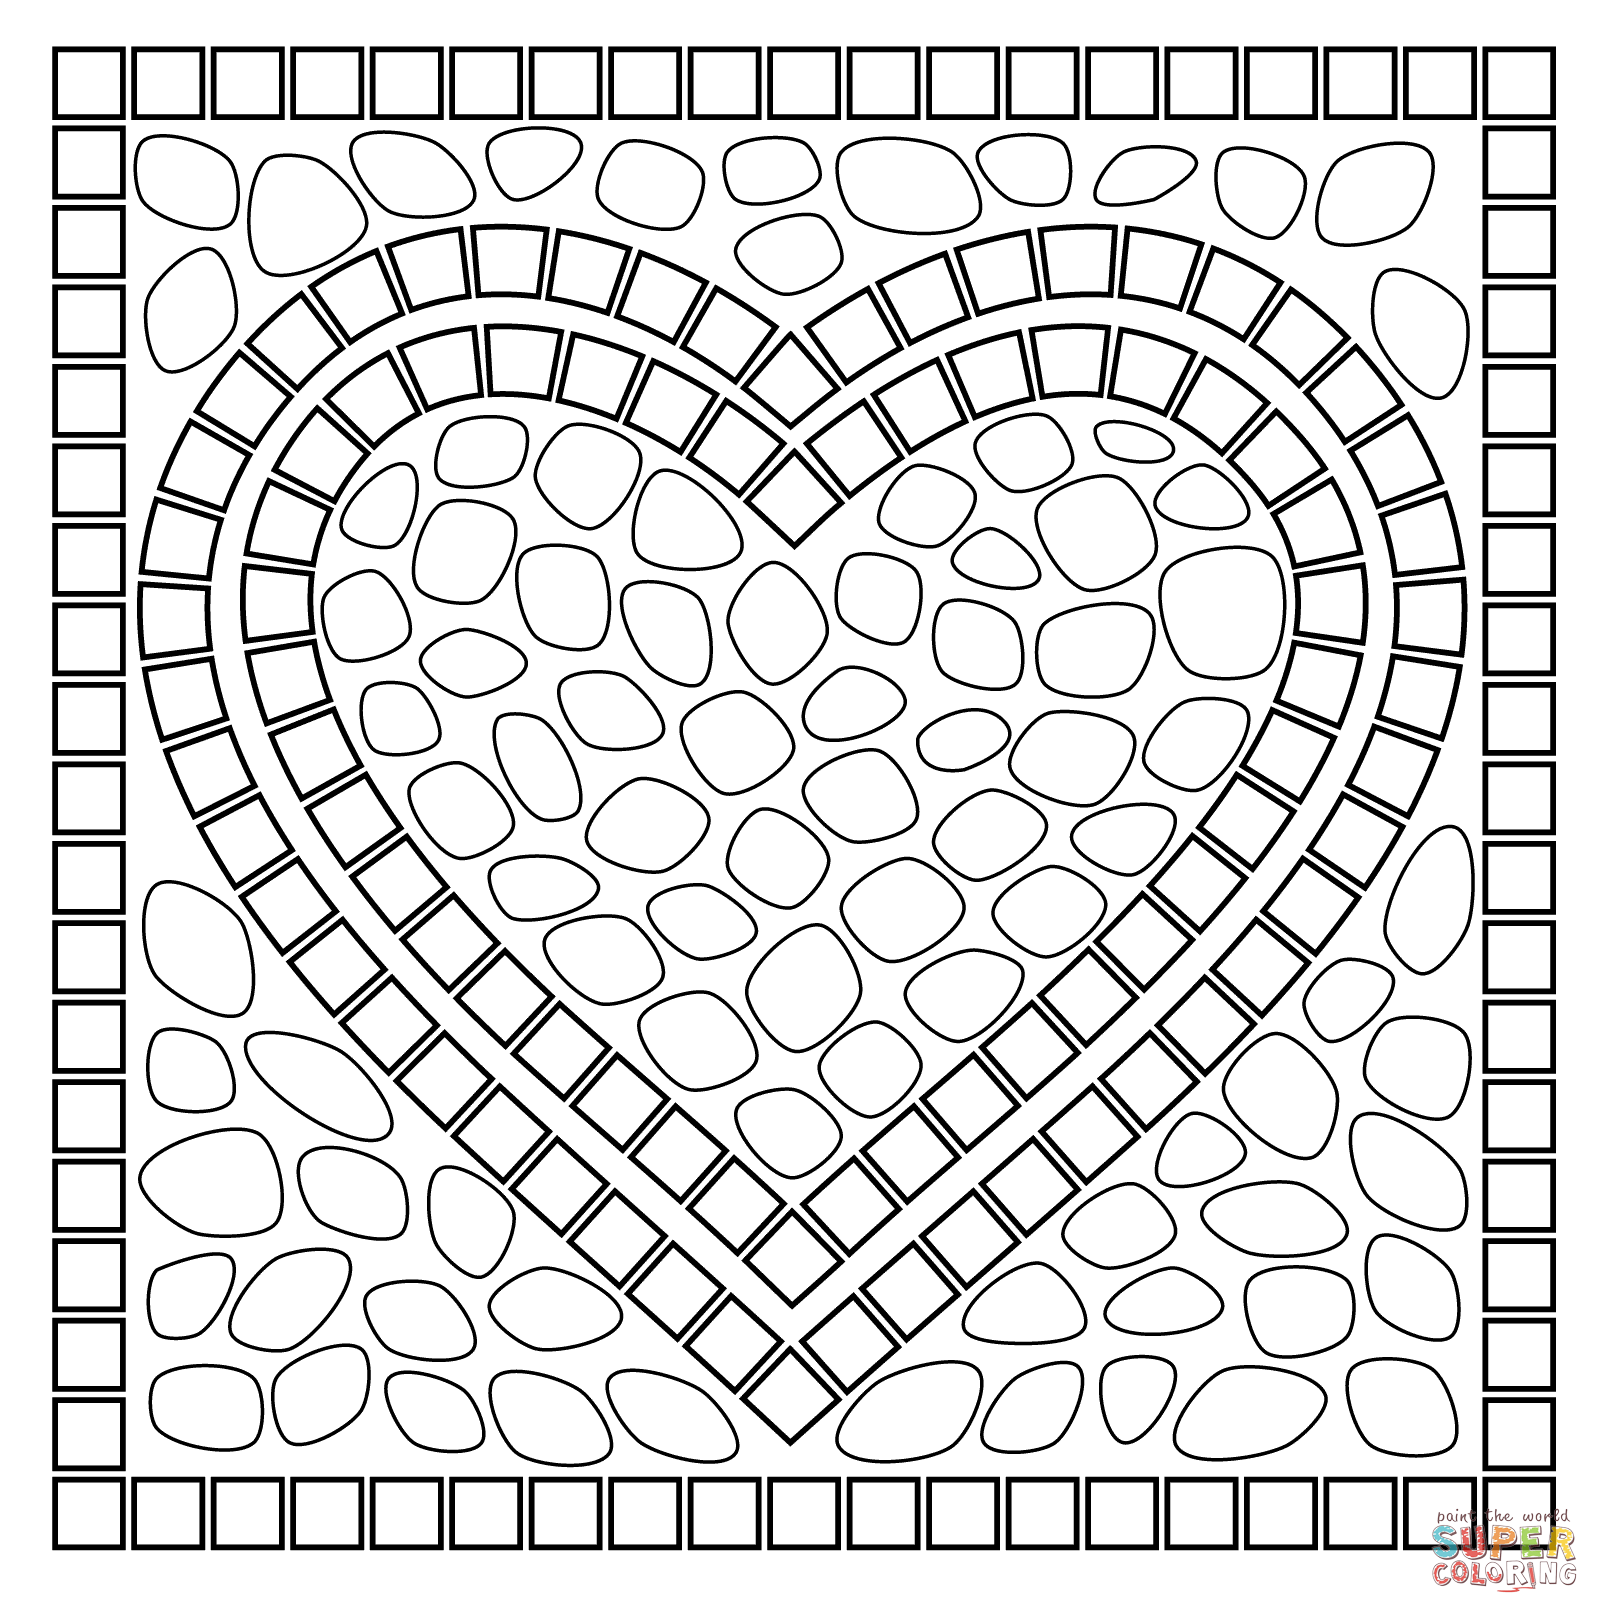 printable mosaic coloring pages mosaic coloring pages of animals coloring home printable mosaic coloring pages